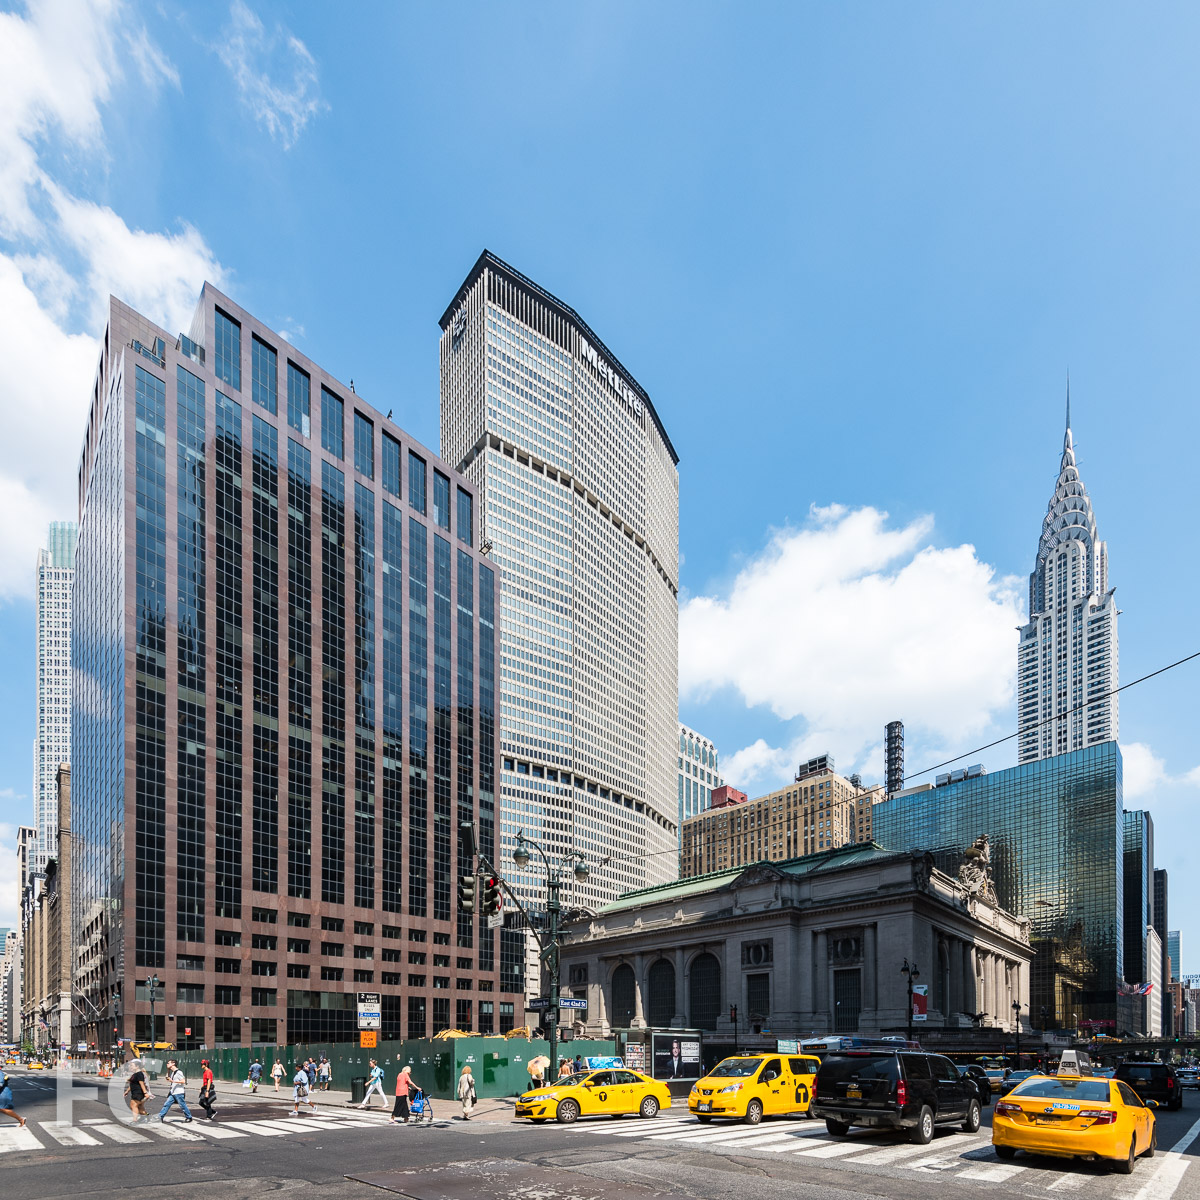 Southwest corner of the site at East 42nd Street and Madison Avenue.